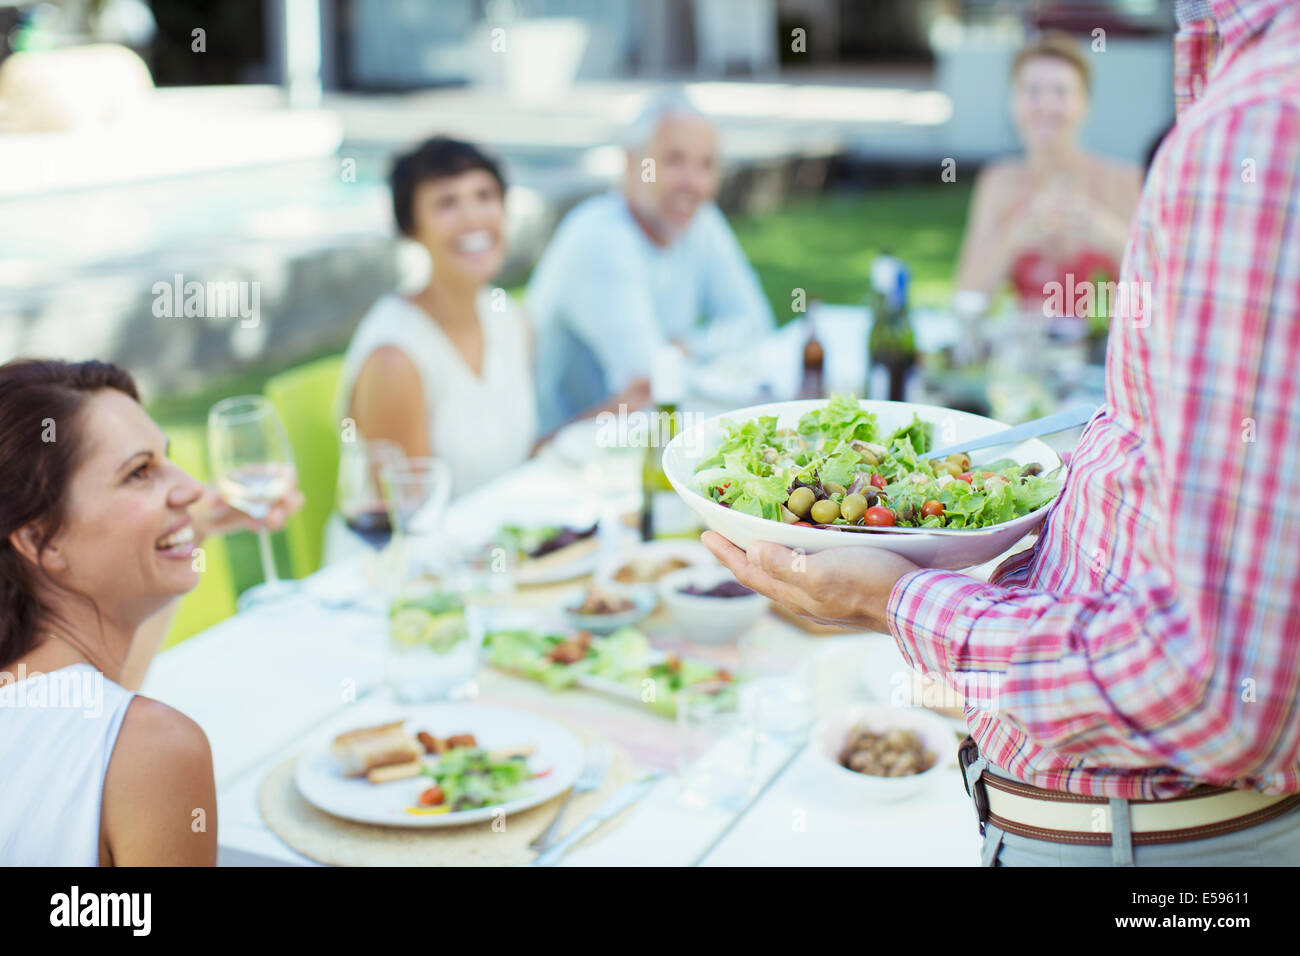 Man serving friends at table outdoors - Stock Image